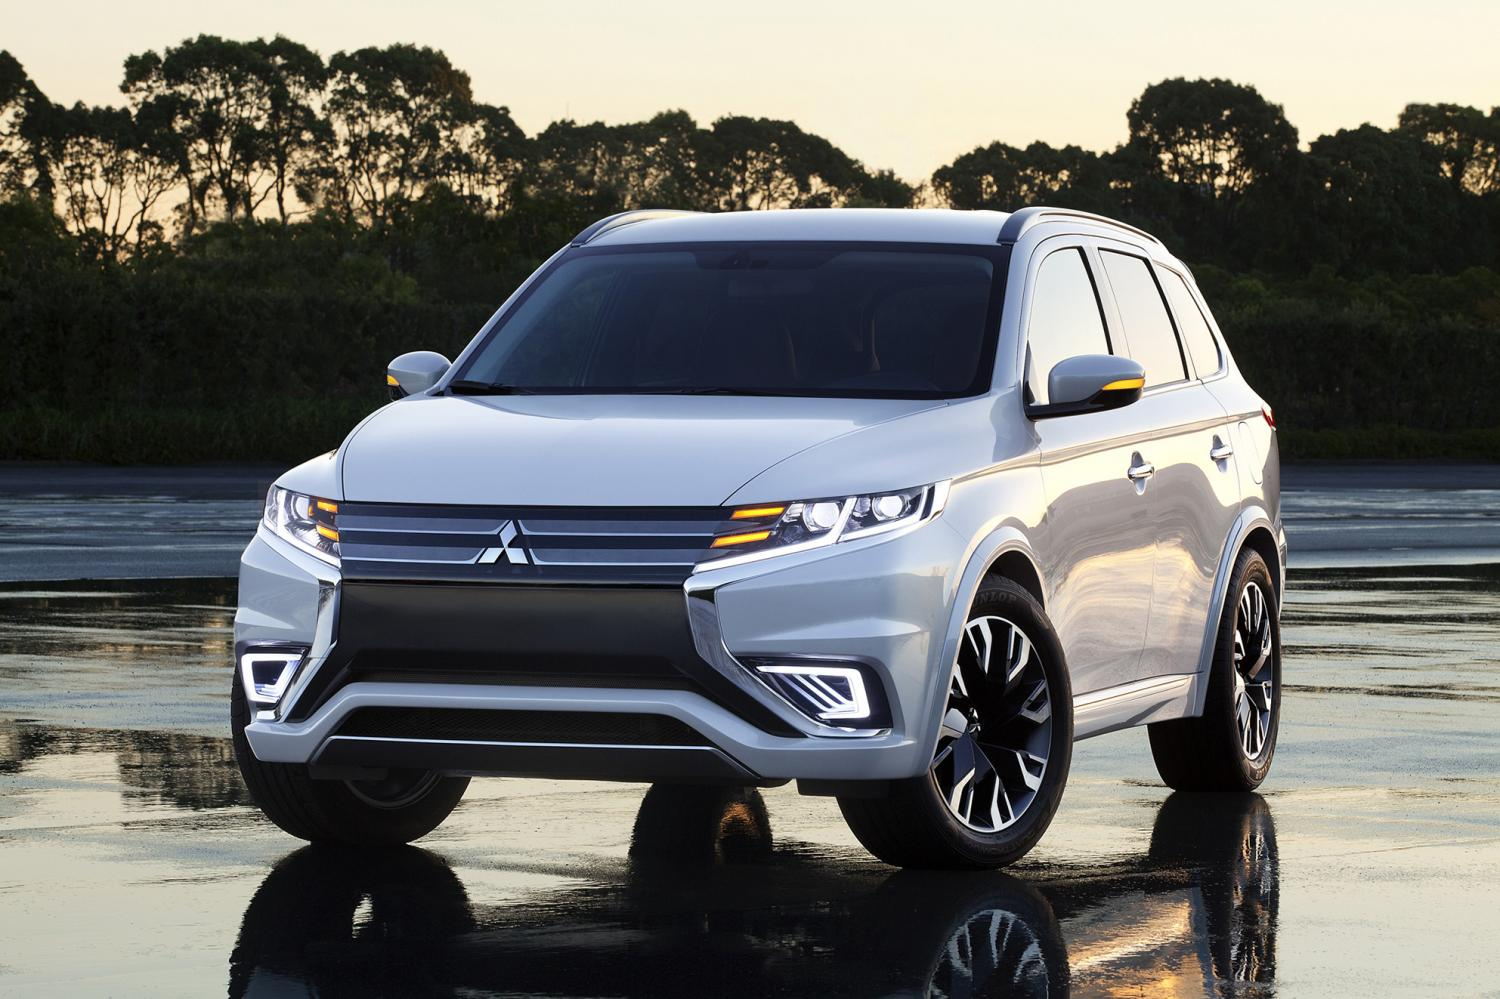 Mitsubishi Schedules 2021 Phev Debut